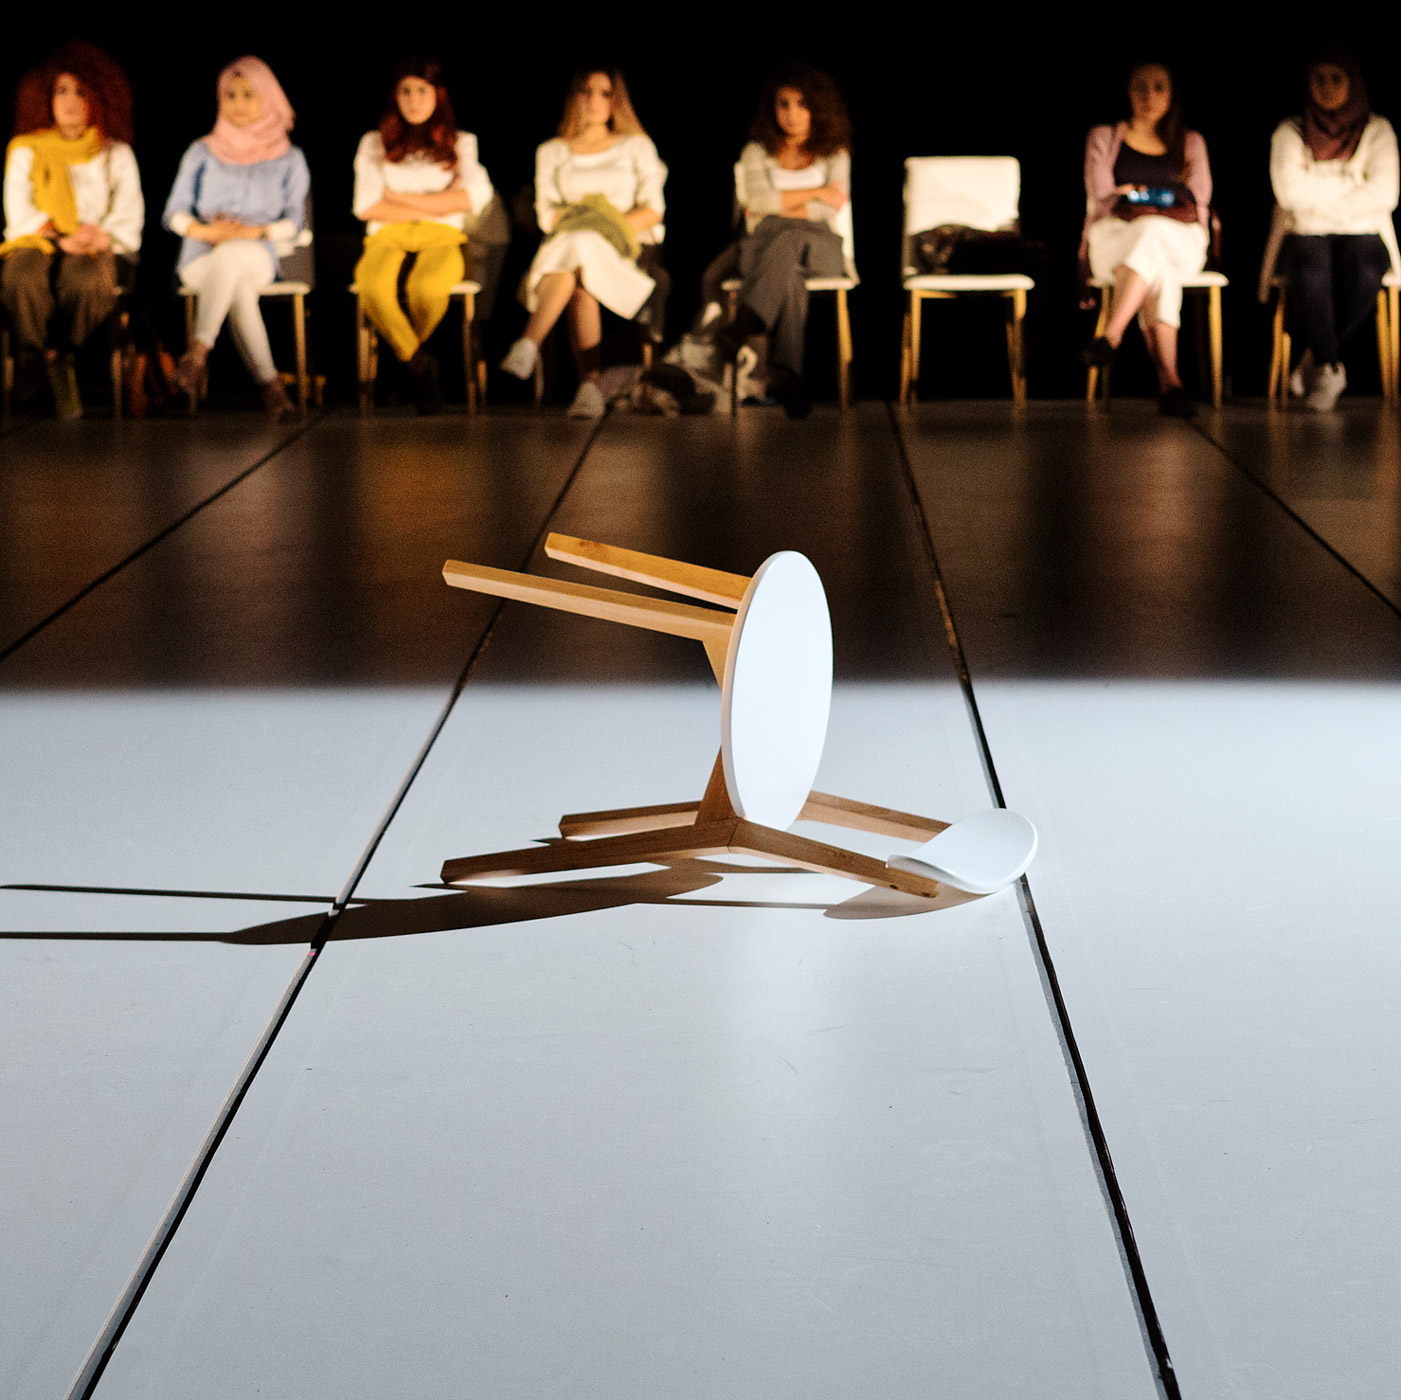 a row of people sit on chairs at rear of stage on which a chair lays on its side